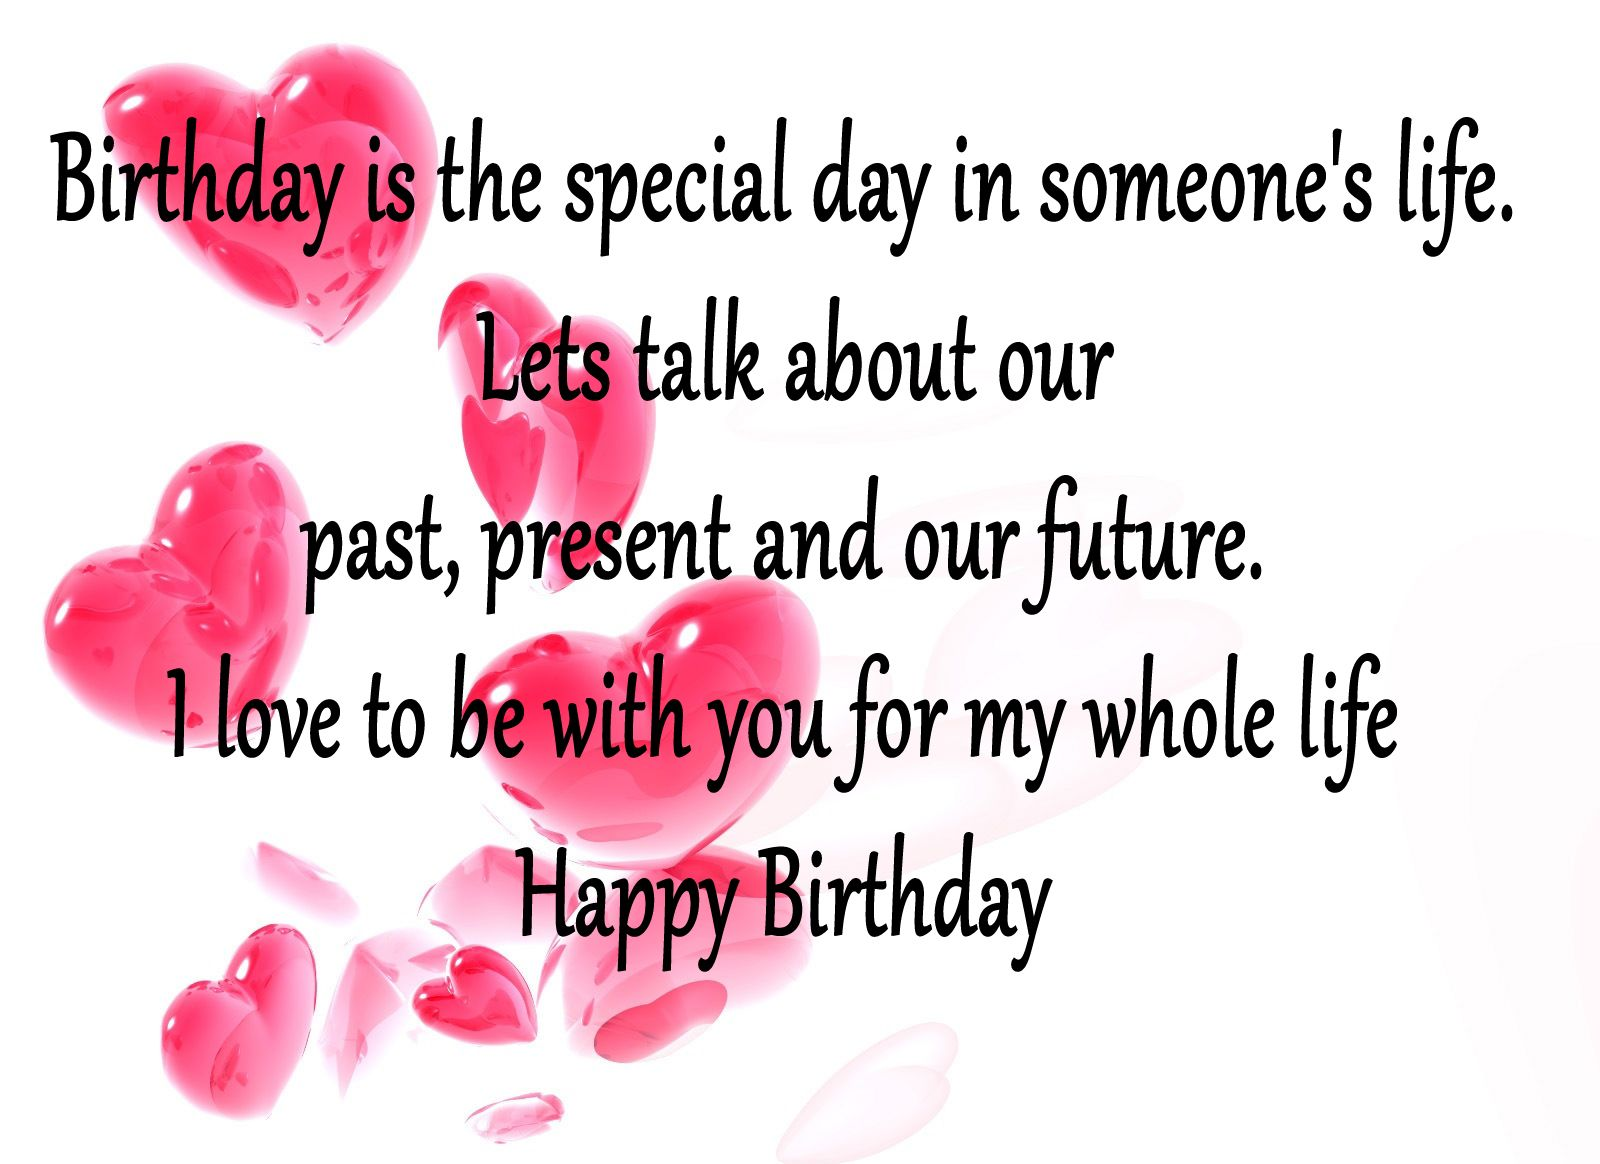 Birthday Wishes For Love Partner Birthday Images And Quotes